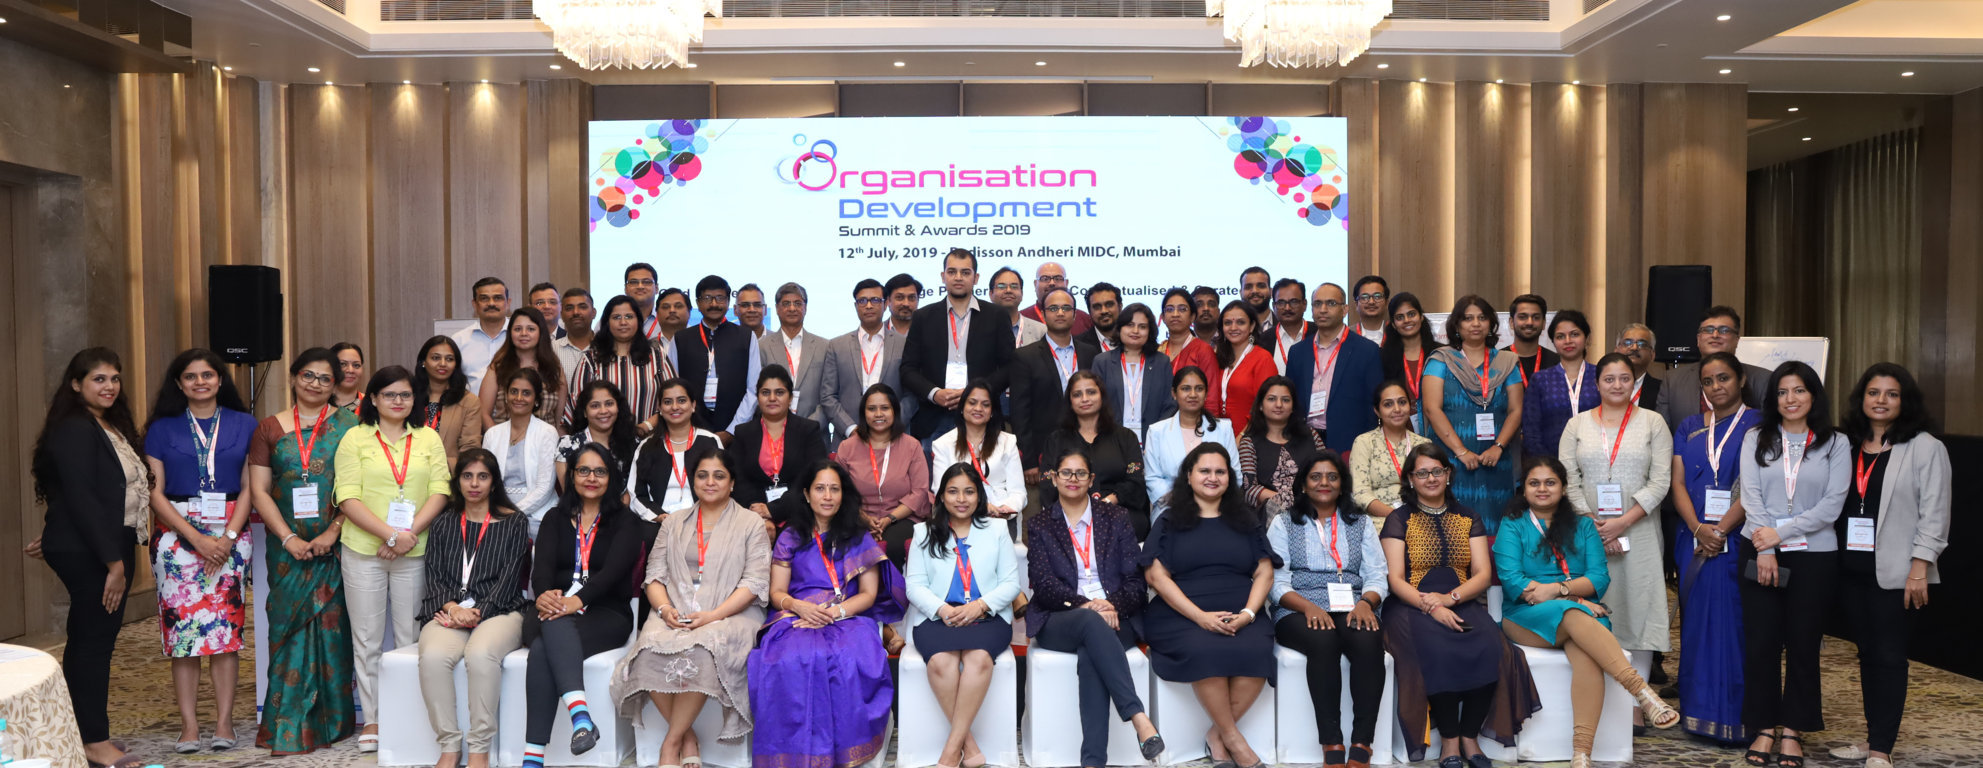 Organisation Development Summit & Awards 2019